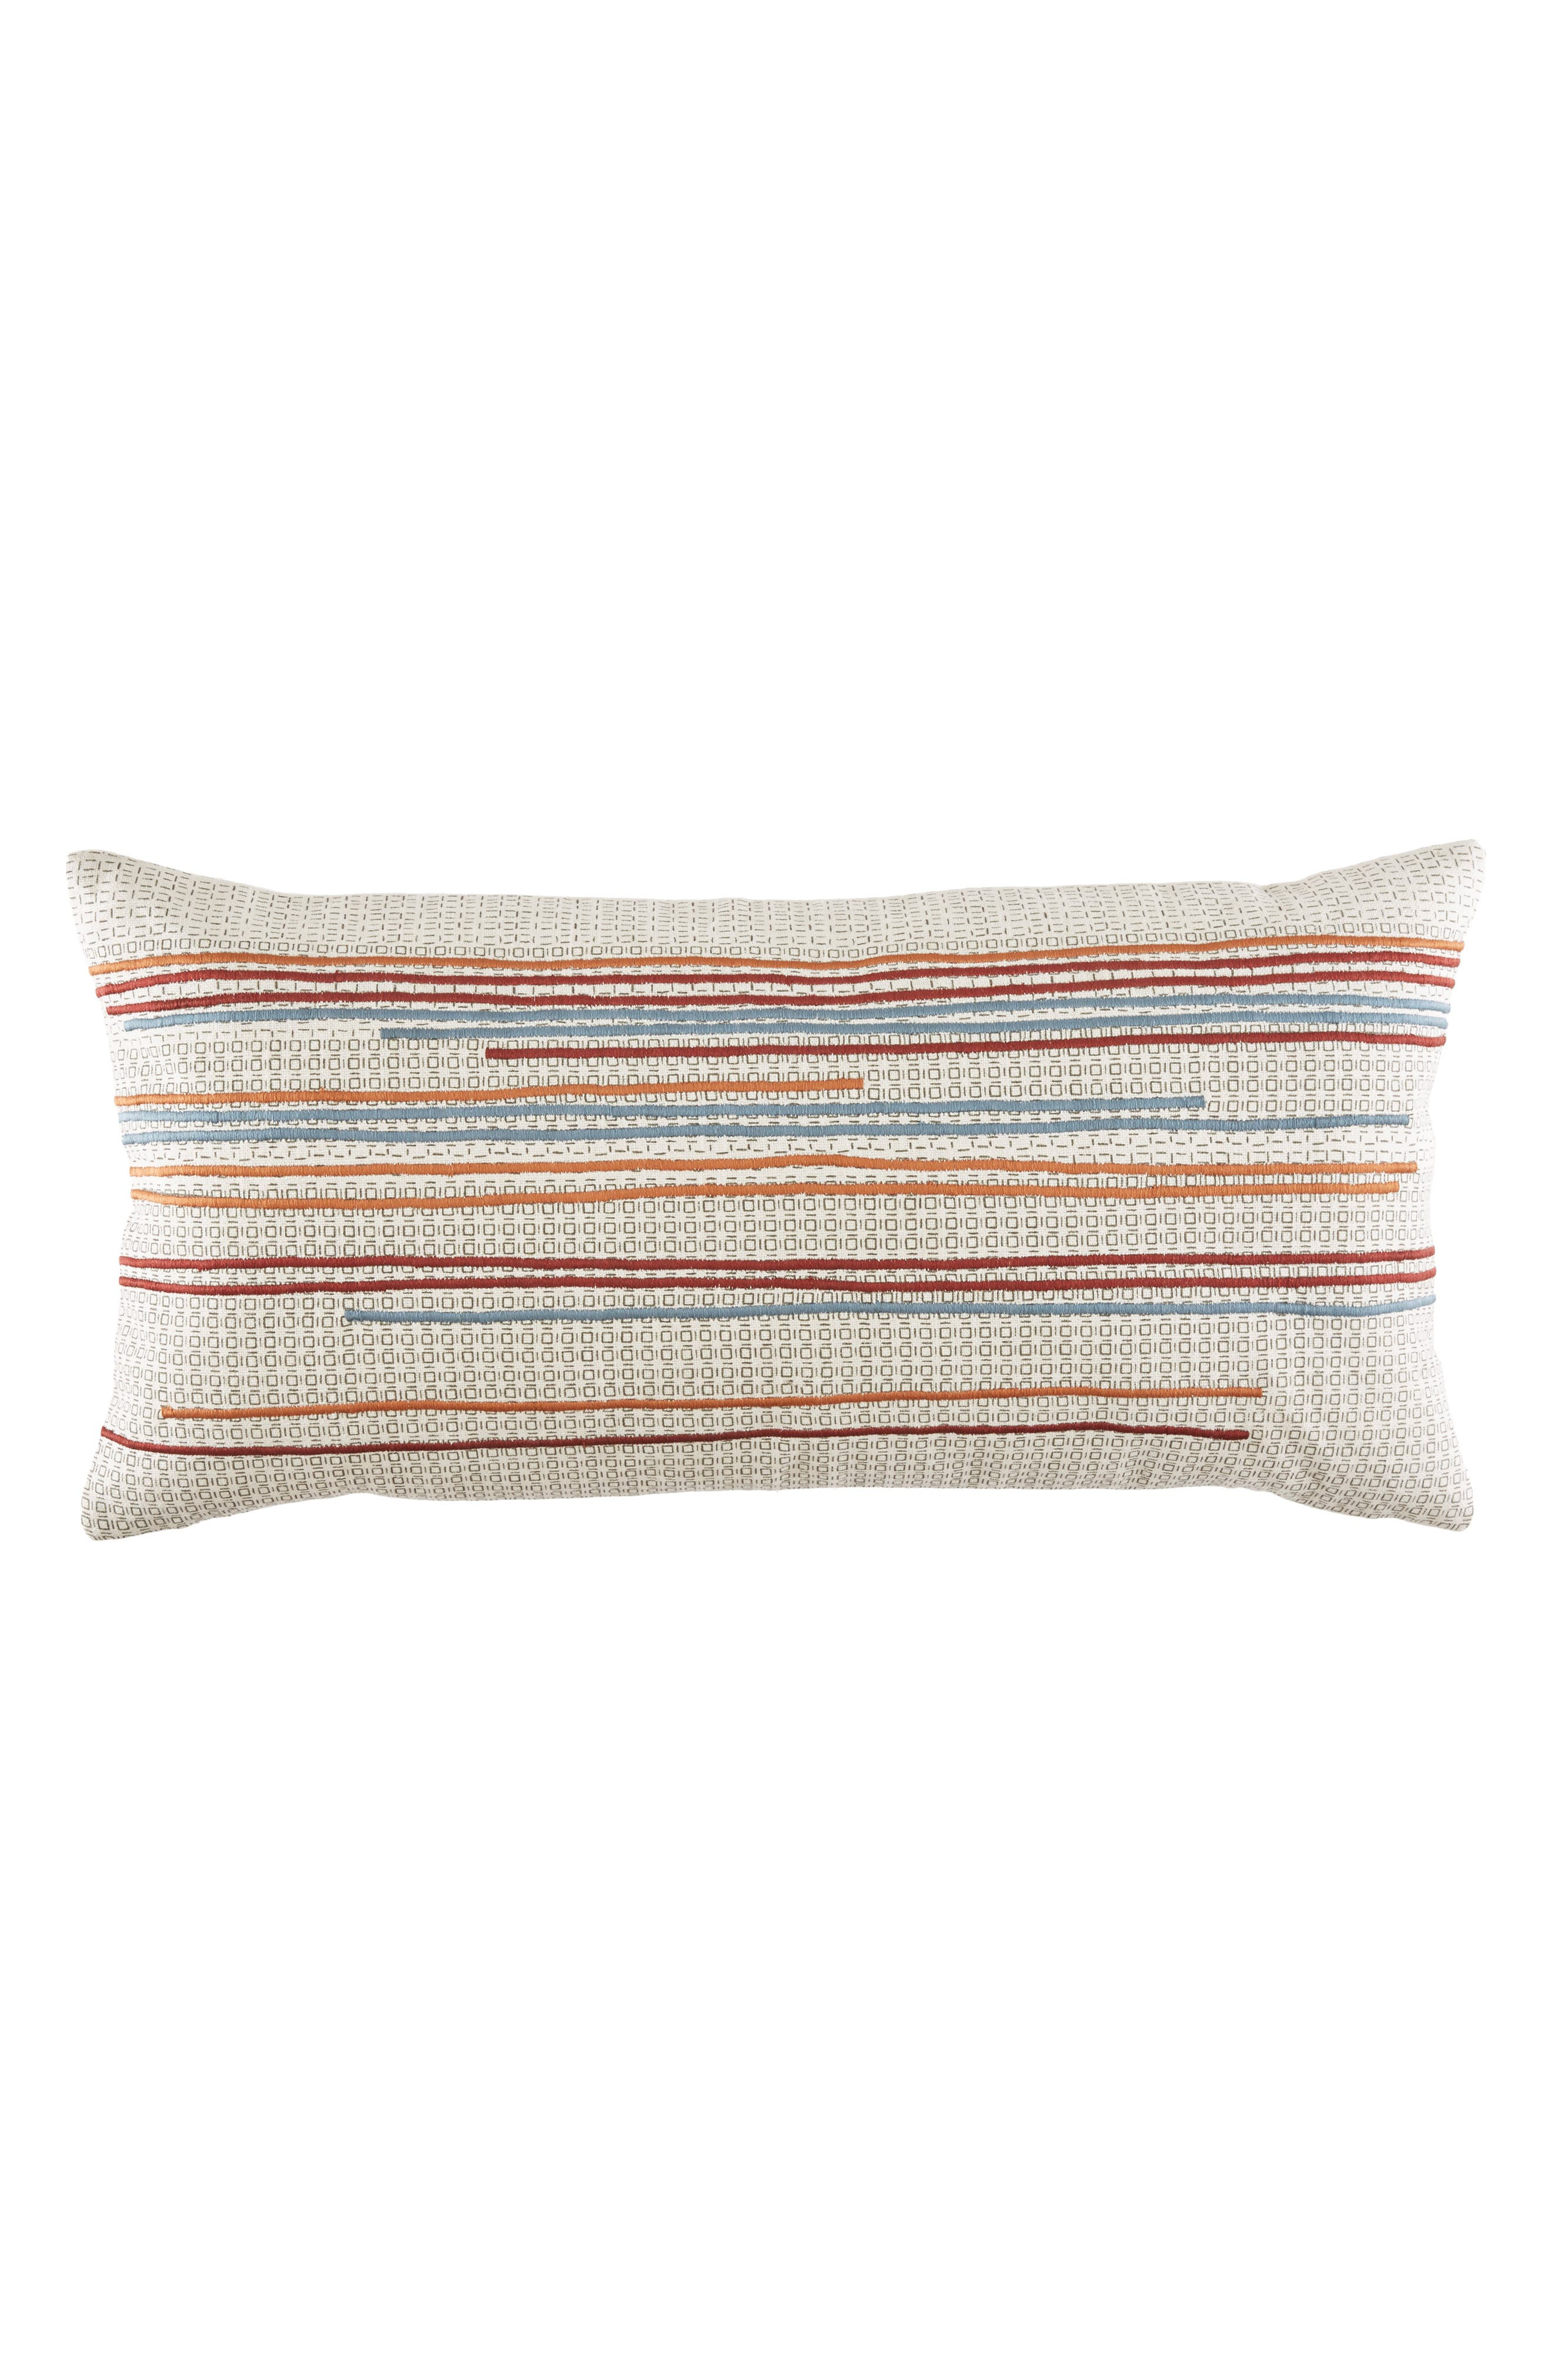 Alternate Image 1 Selected - DwellStudio Indira Accent Pillow